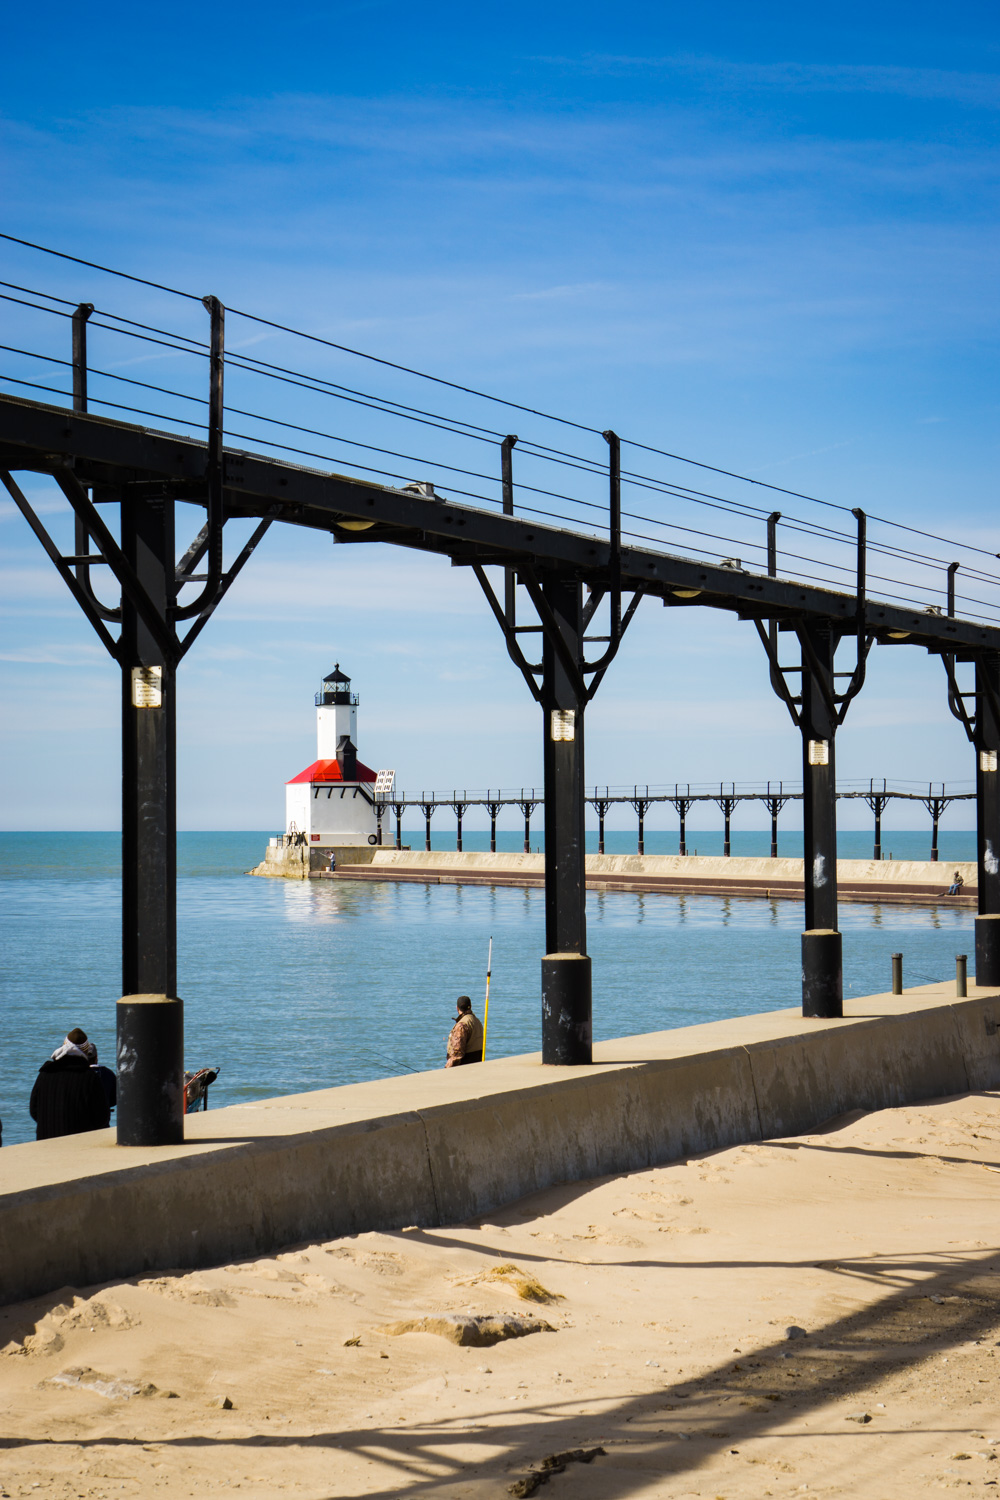 Fisherman starting to arrive at Michigan City's Old Lighthouse